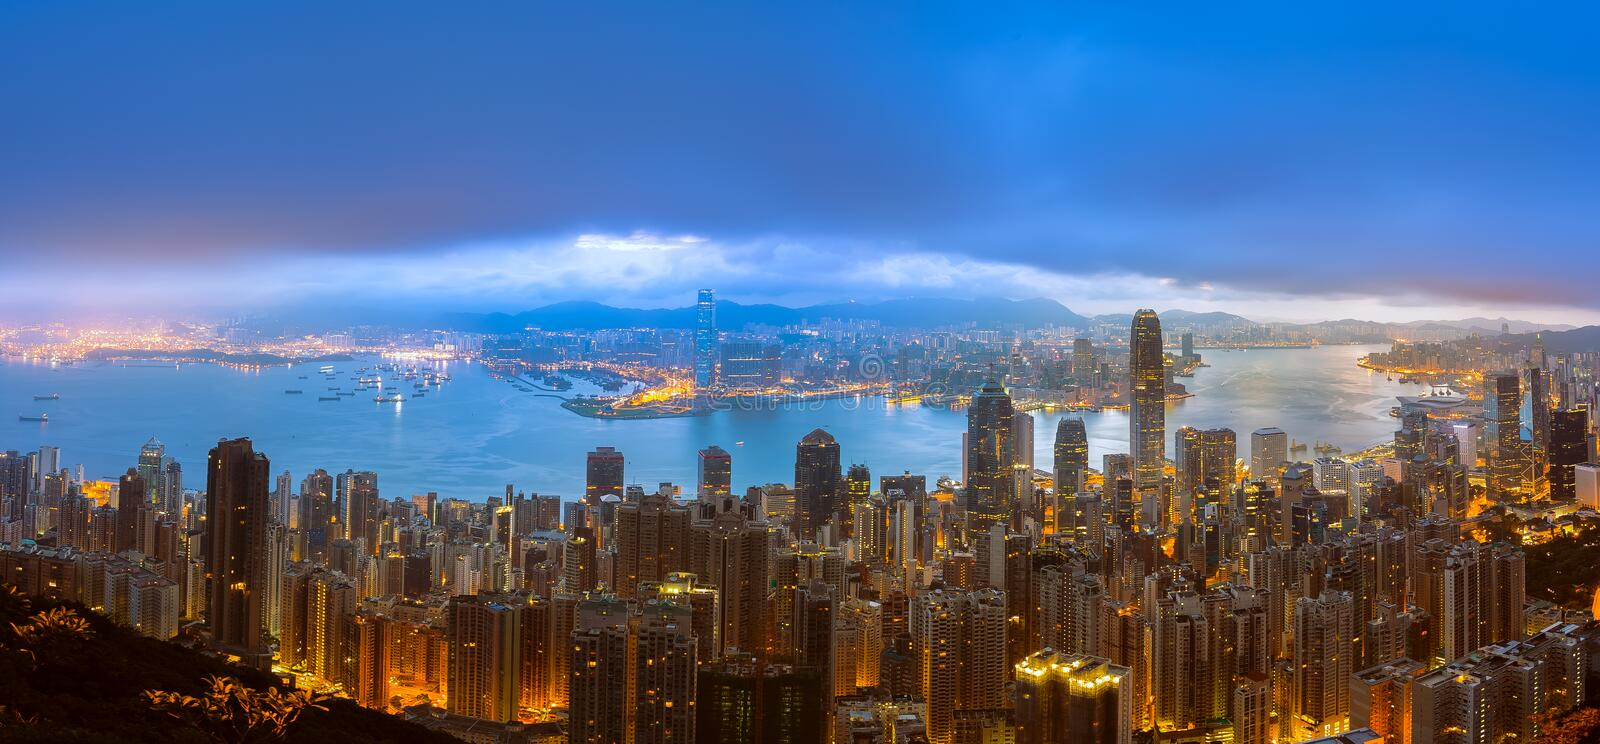 Download Panorama View Of Hong Kong City From The Sky Stock Image - Image of financial, cityscape: 111068447